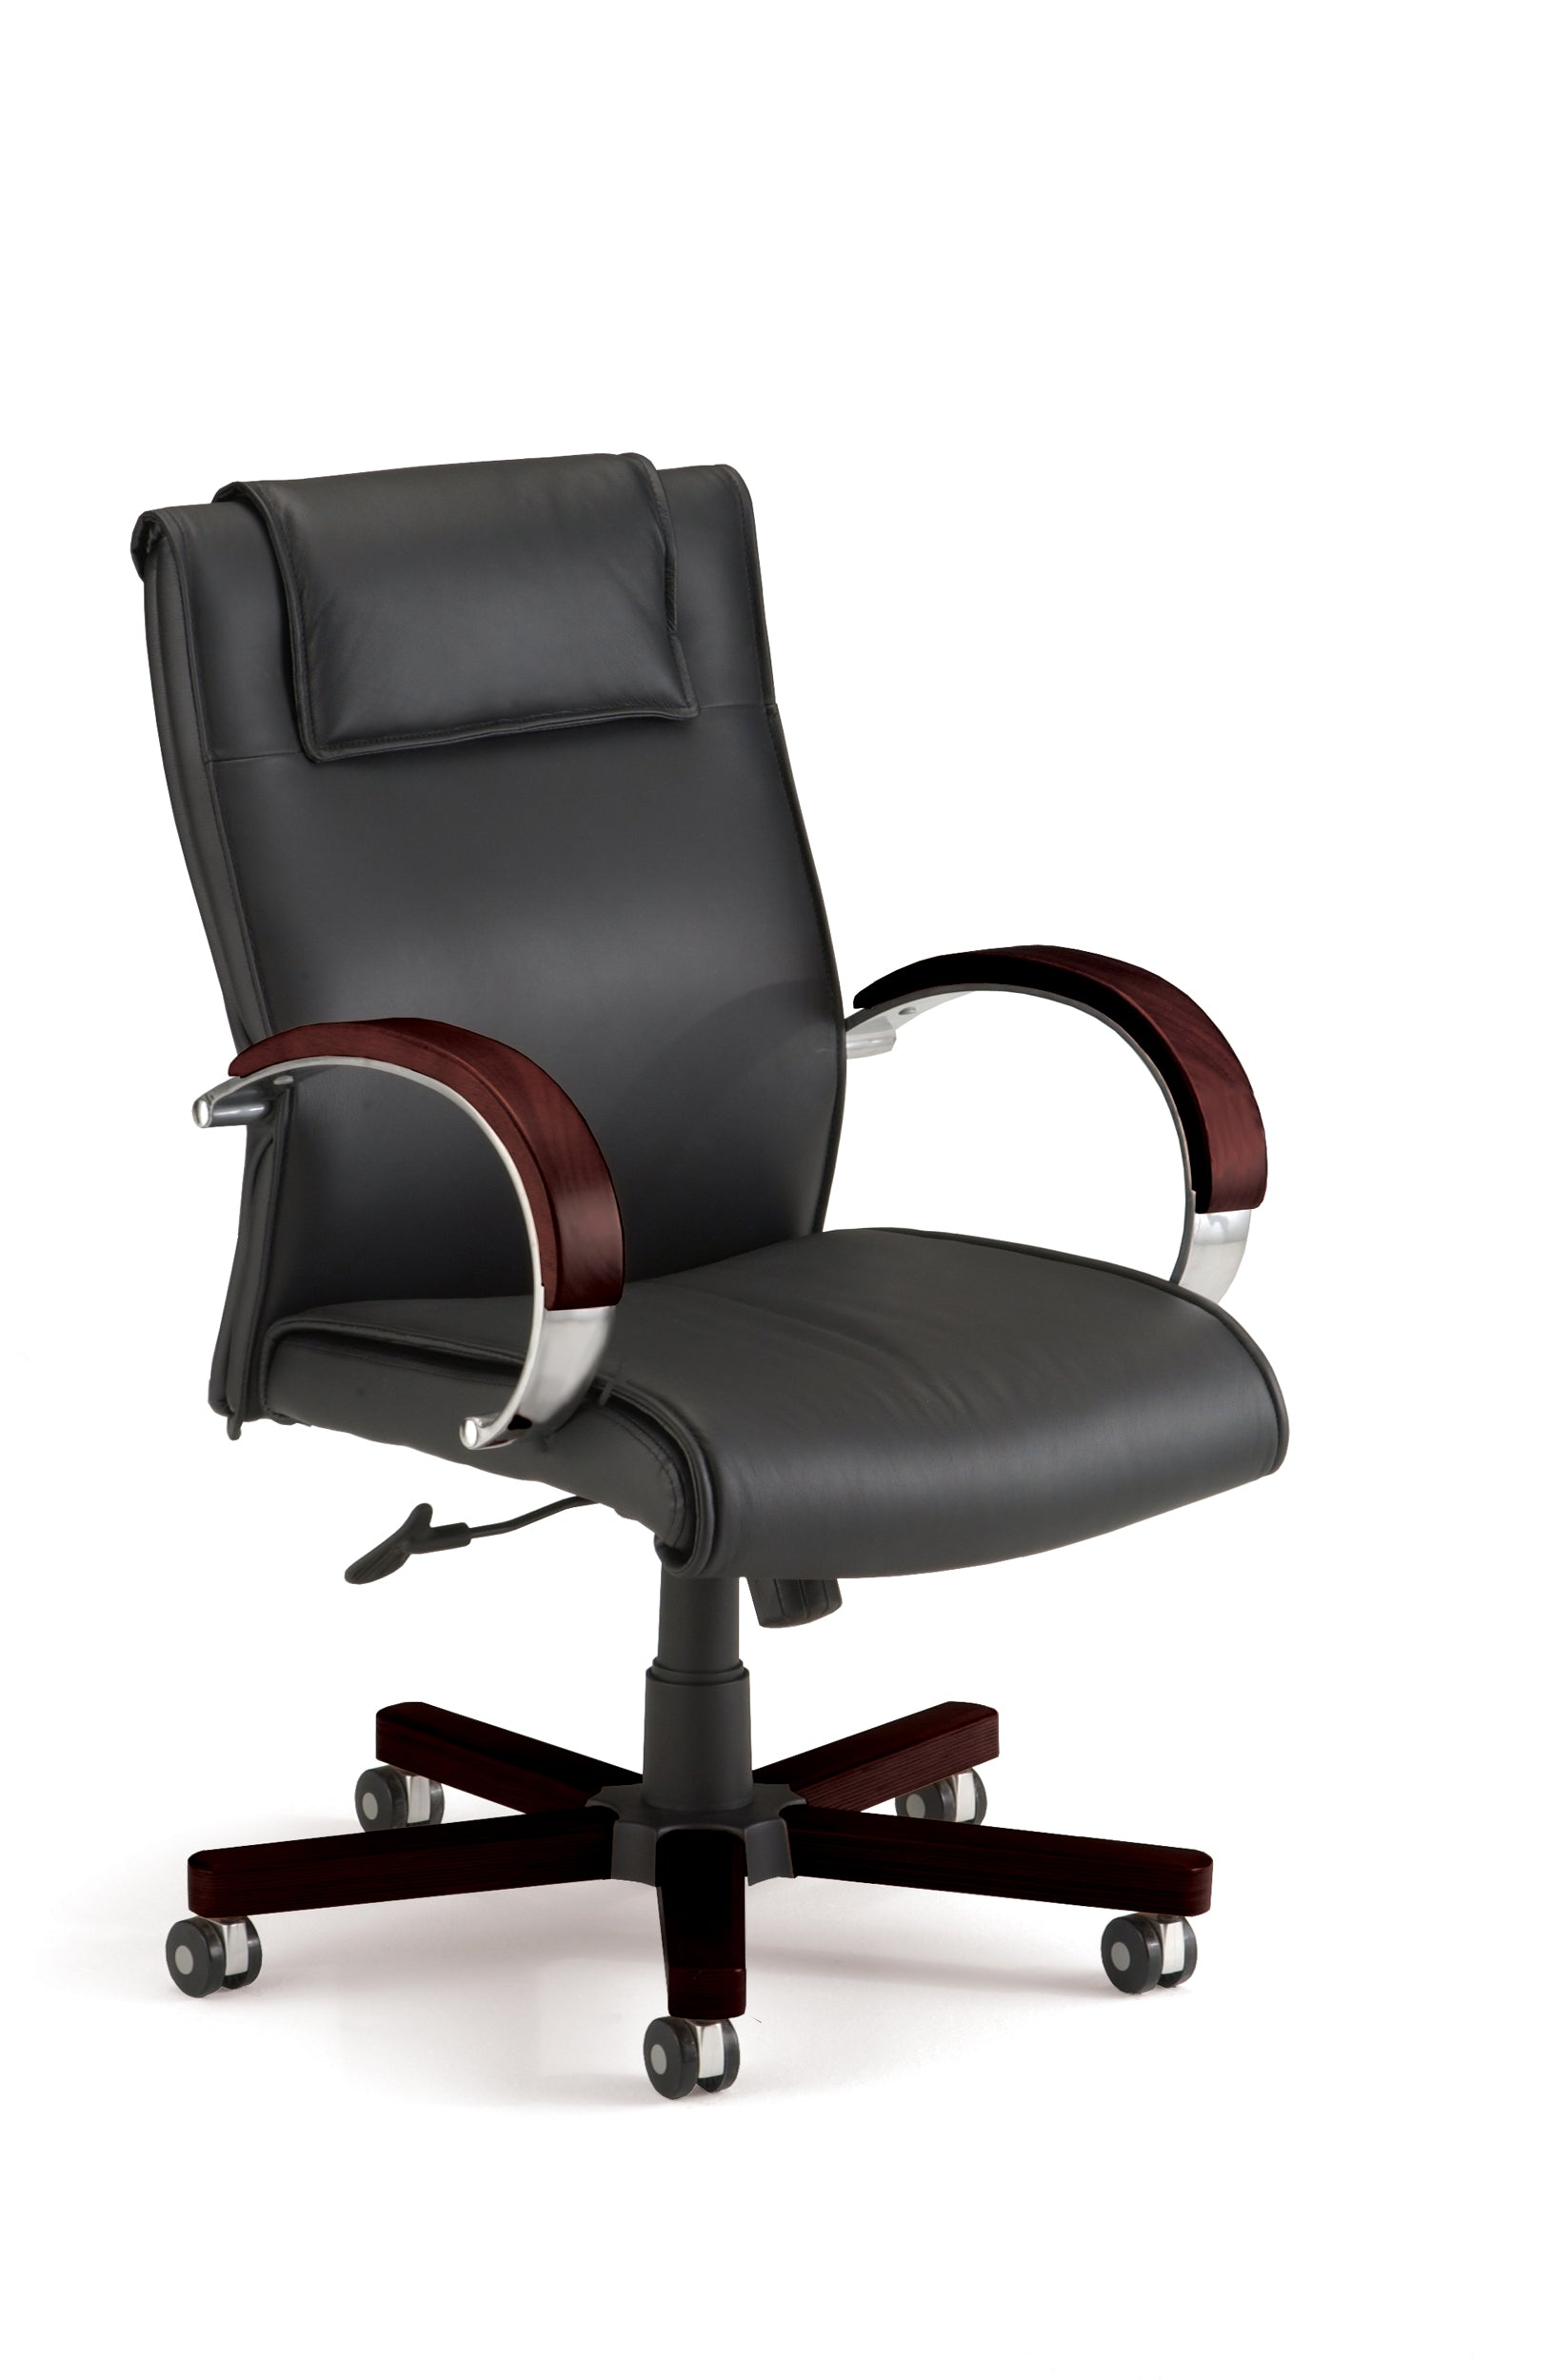 Model 561-L Apex Series Mid-Back Leather Executive Office Chair